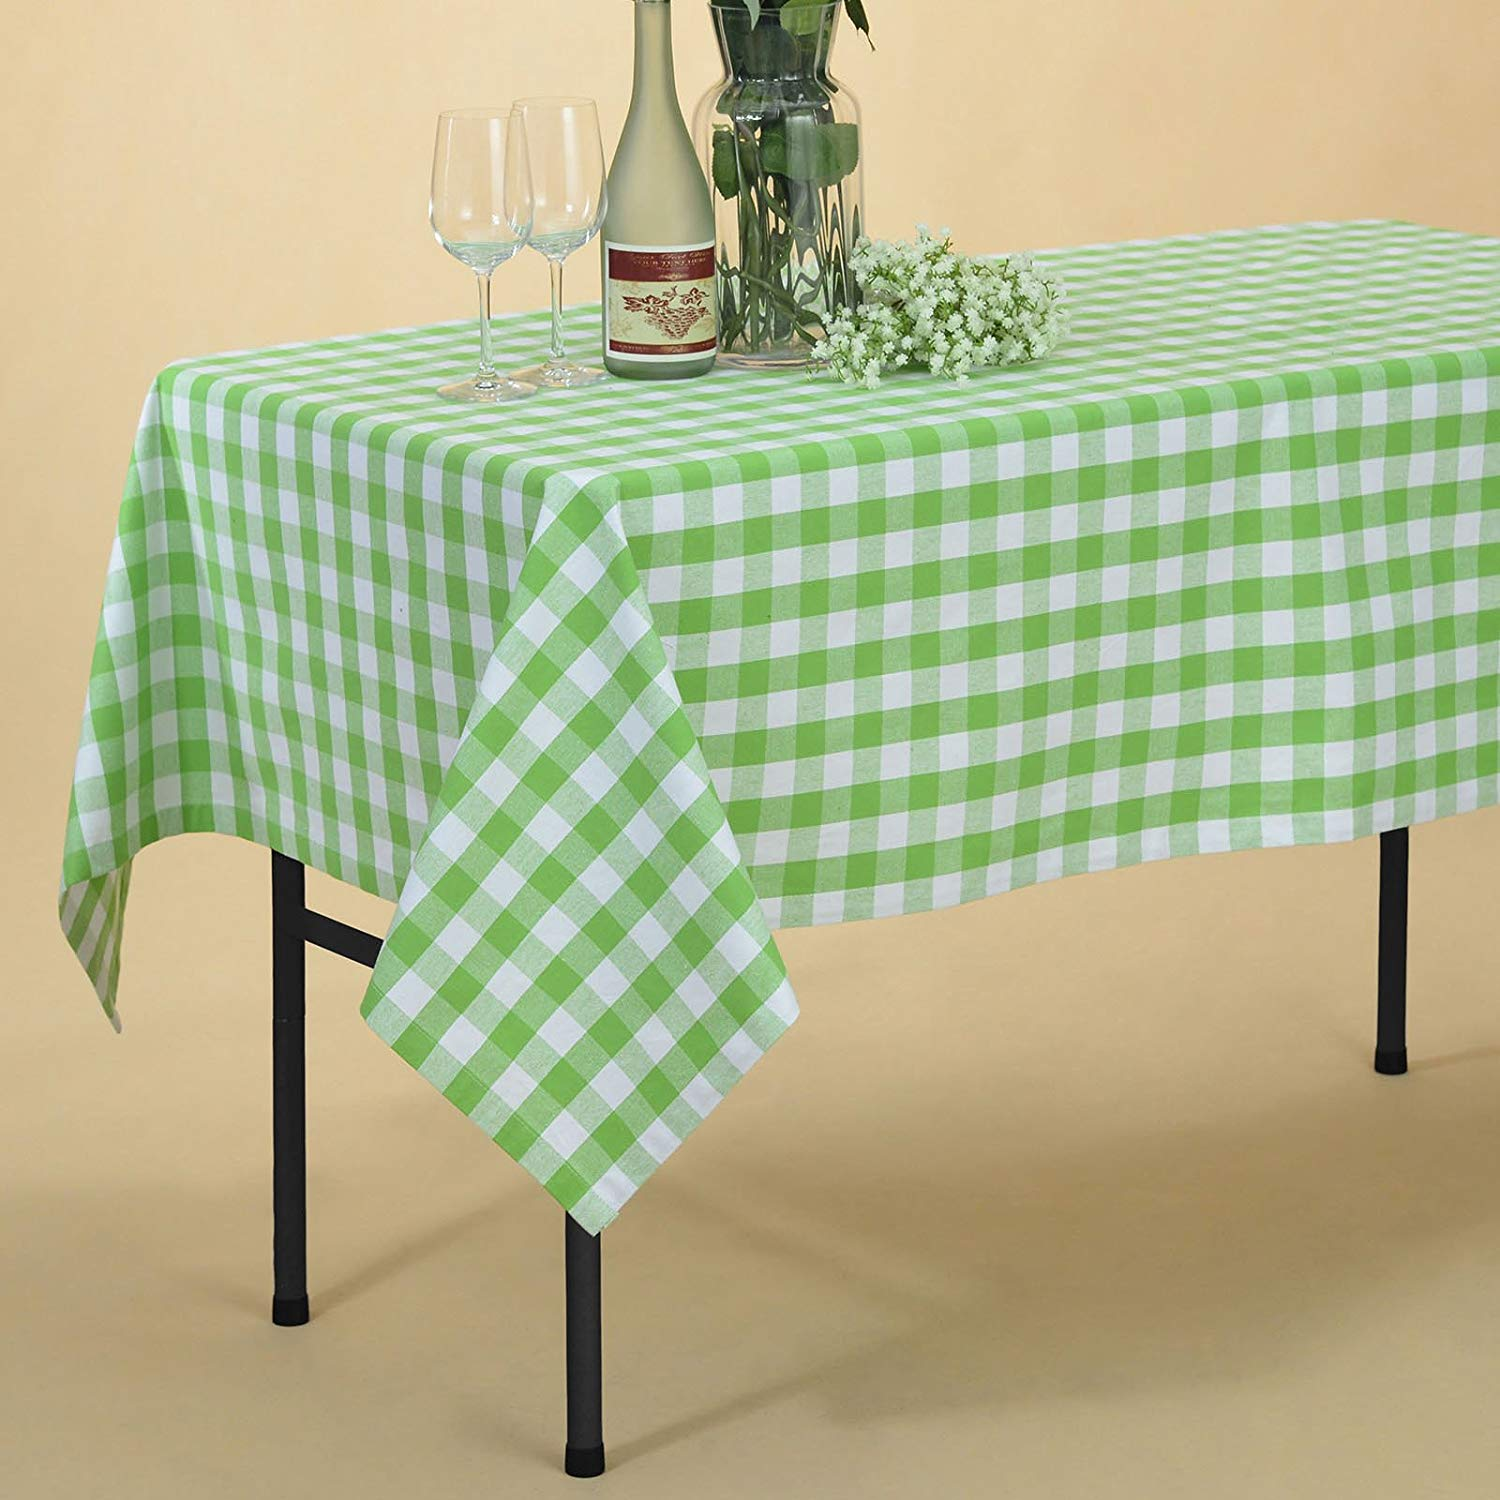 veeyoo rectangular plaid check tablecloth gingham round accent table cloths cotton for home kitchen party indoor outdoor use inch seats people tray target glass door cabinet black